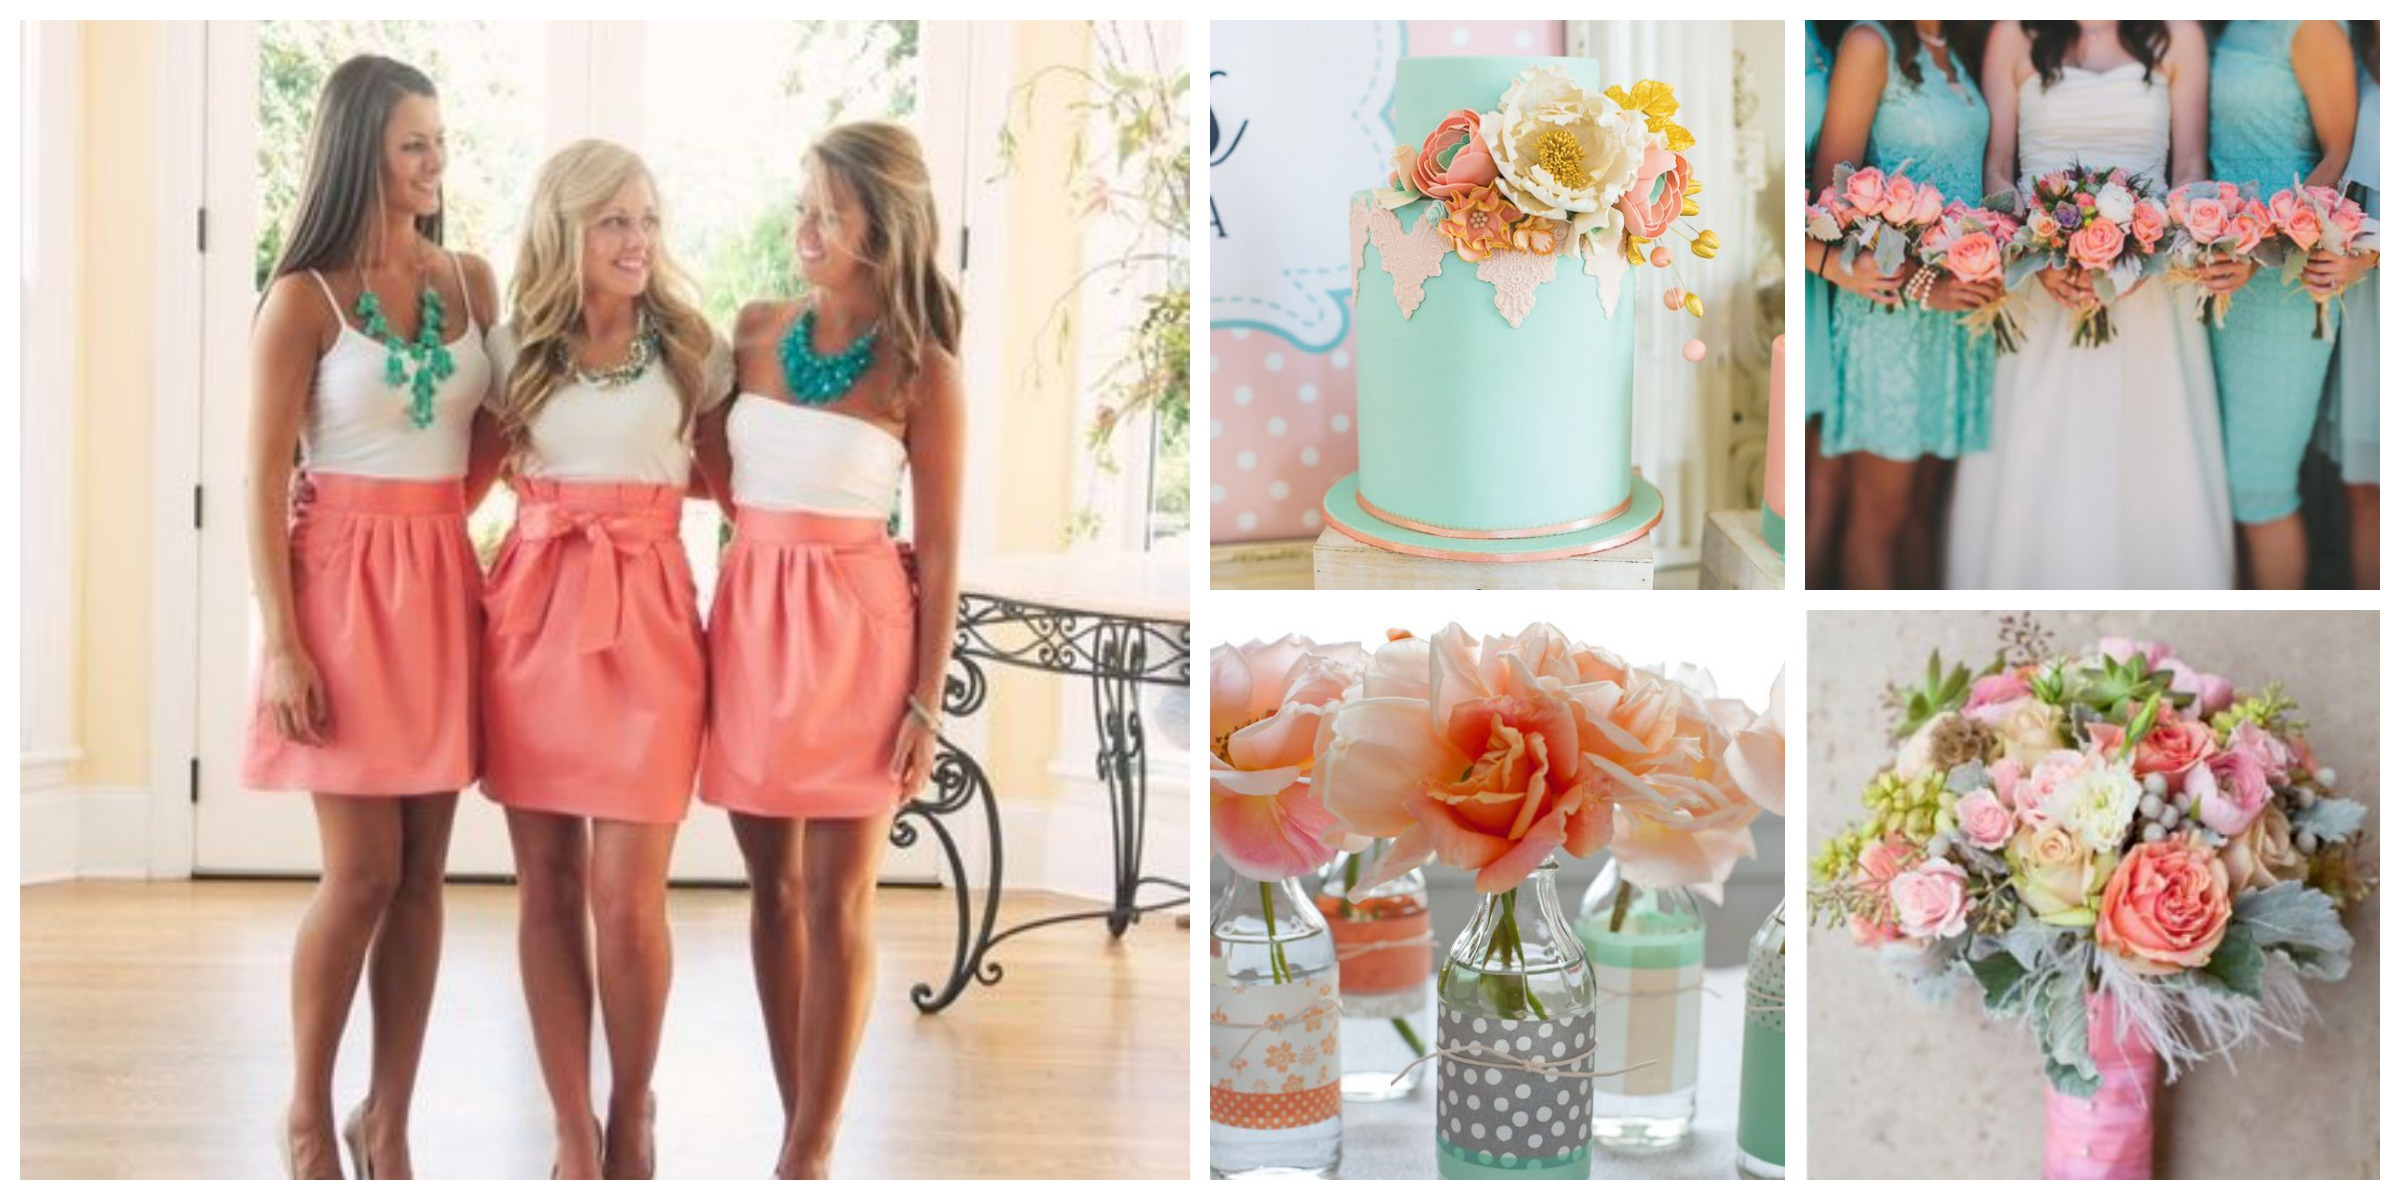 The Trendiest Wedding Colors this Season